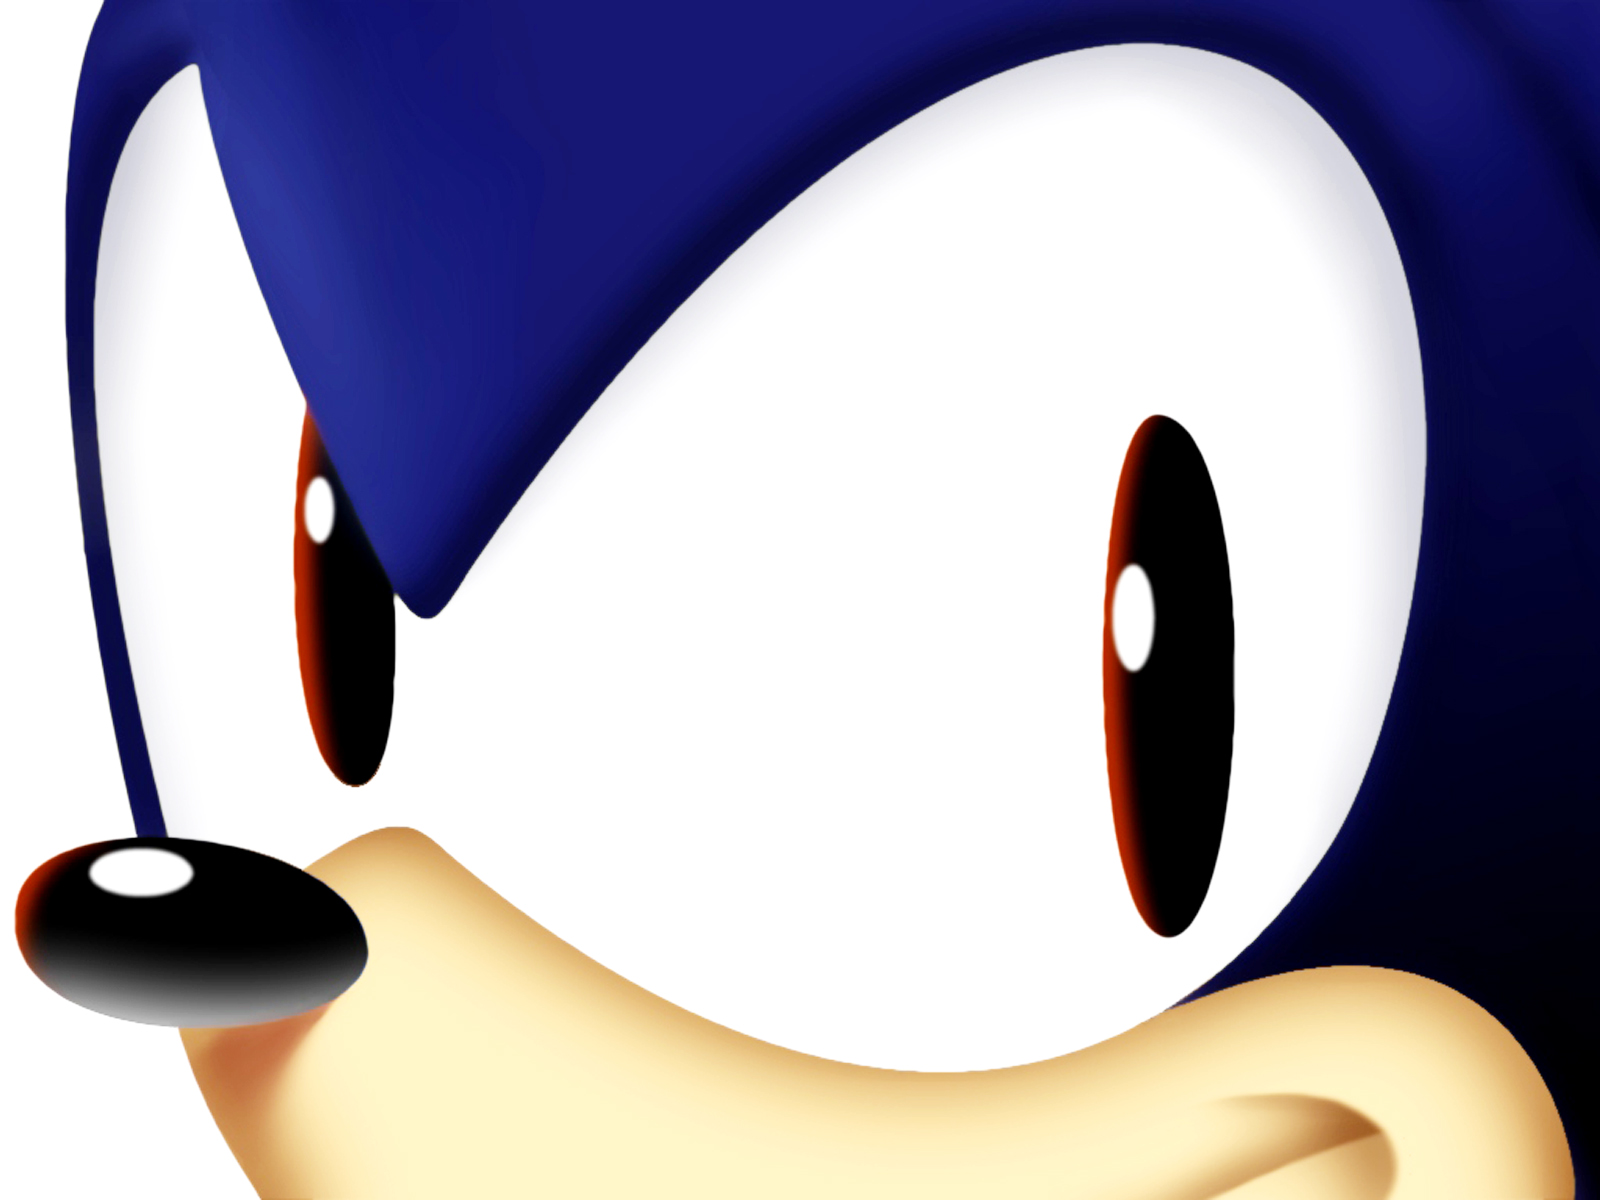 http://2.bp.blogspot.com/-MFy4LuXGHrk/TyrHSATvkOI/AAAAAAAAAfs/ddY3DooRkUY/s1600/Sonic_The_Hedgehog_Huge_Eyes_HD_Wallpaper-Vvallpaper.Net.jpg